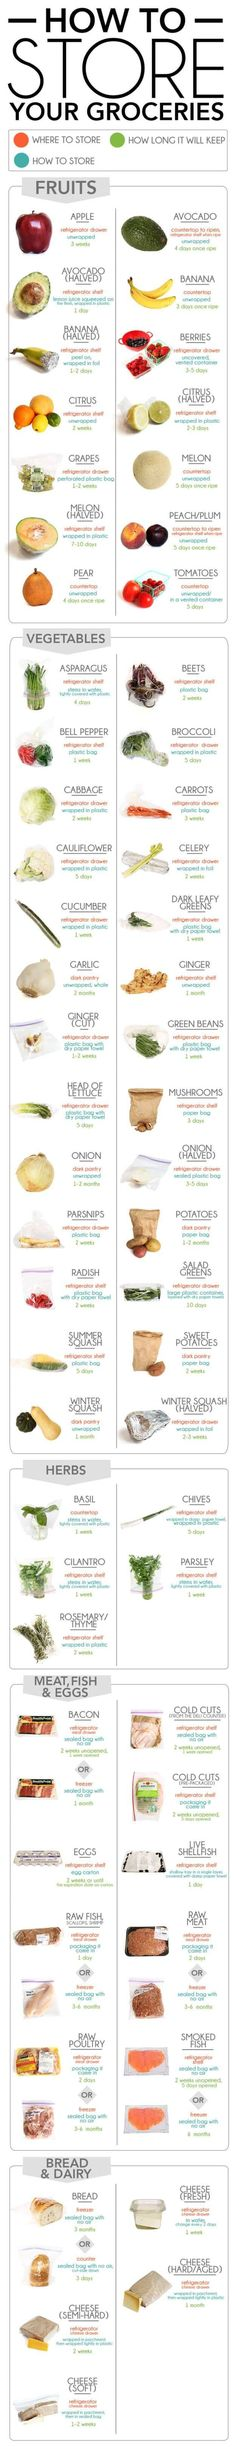 Storage/Shelf Life of Produce | Diagrams For Easier Healthy Eating | https://homemaderecipes.com/healthy-eating-diagrams/